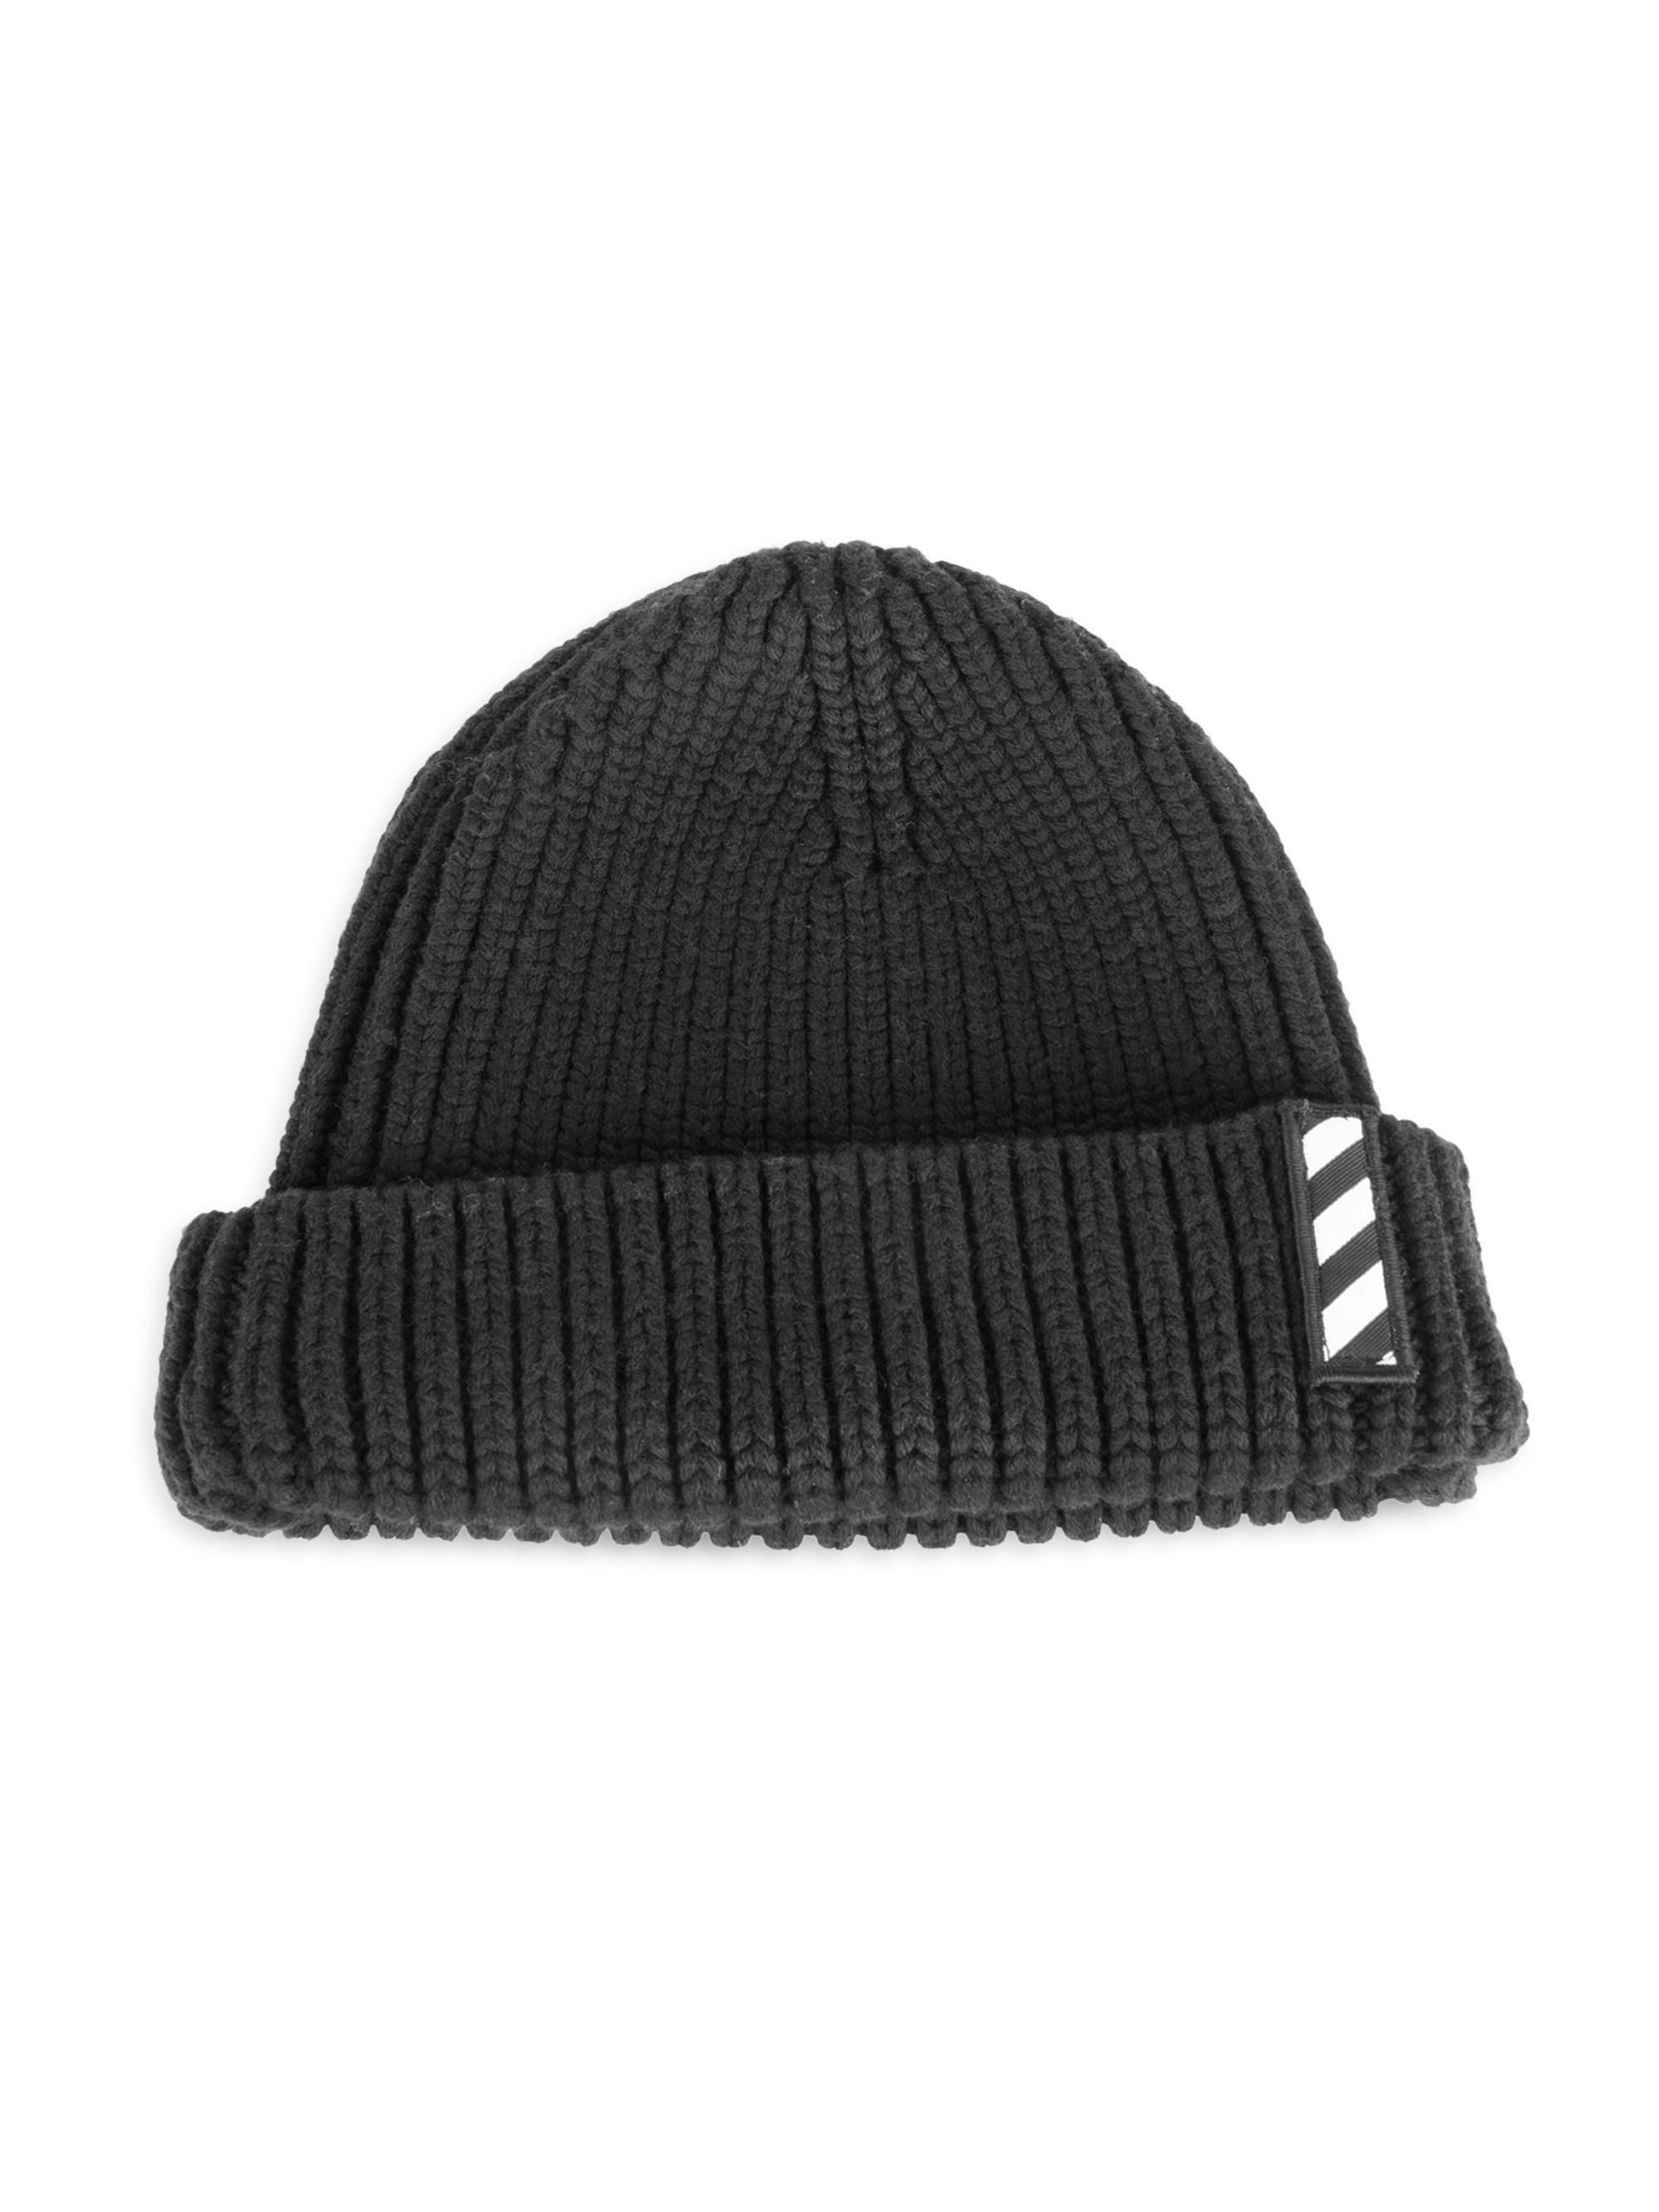 8a553704 Off-White c/o Virgil Abloh Logo Patch Wool Beanie in Black for Men ...